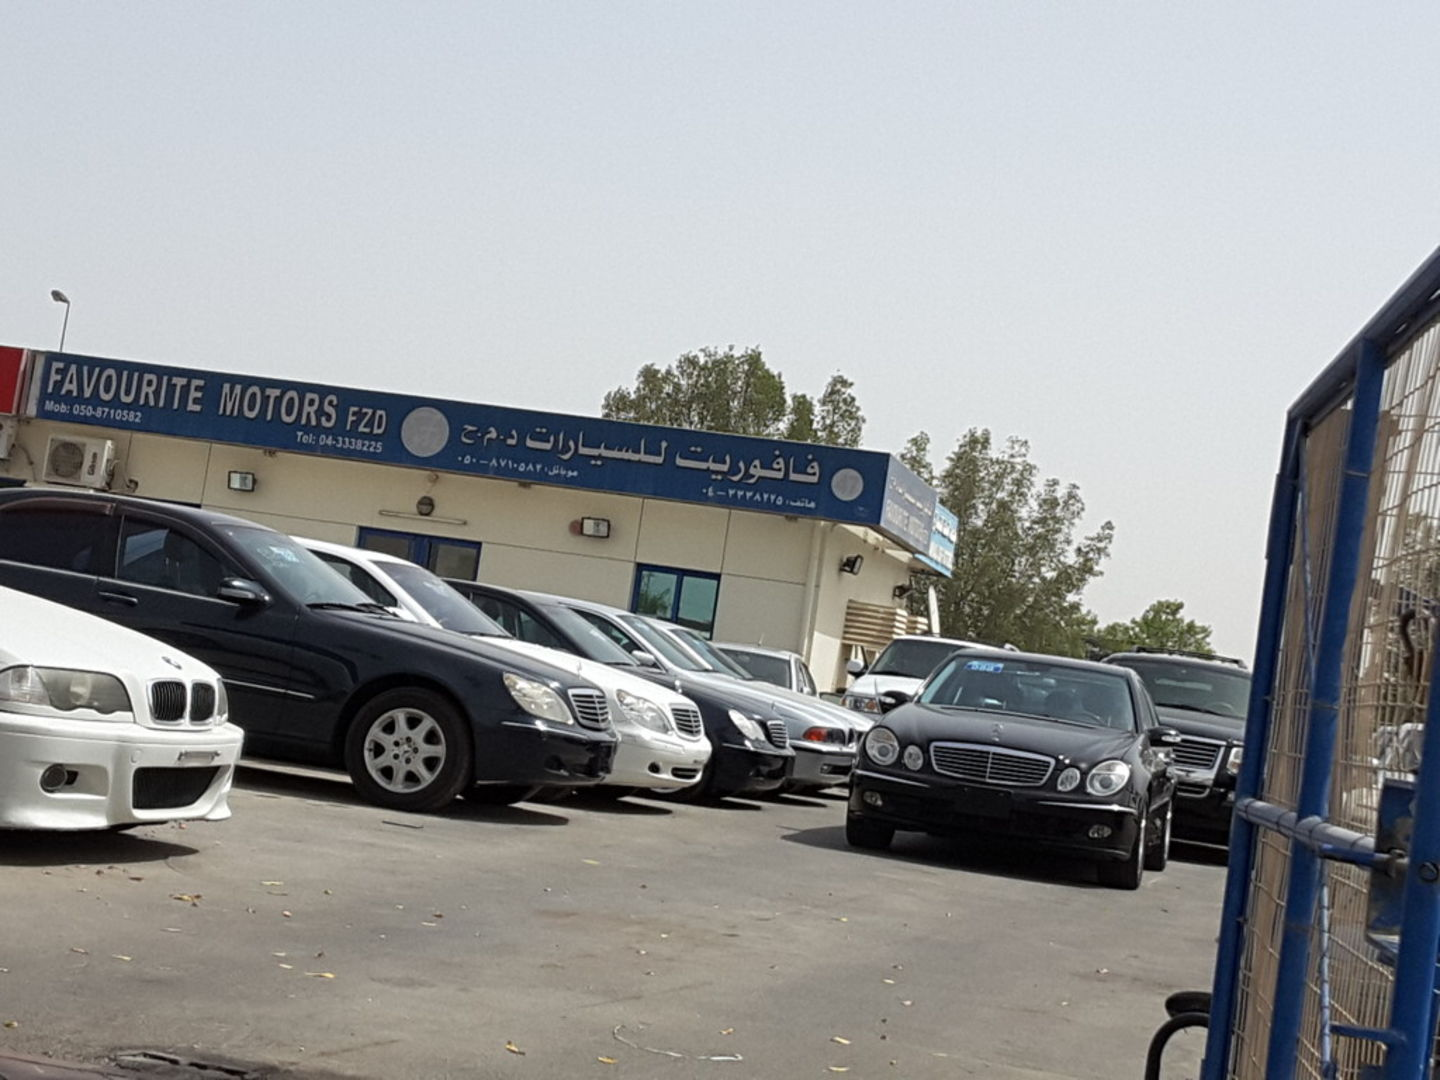 HiDubai-business-favourite-motors-transport-vehicle-services-used-car-dealers-ras-al-khor-industrial-3-dubai-2